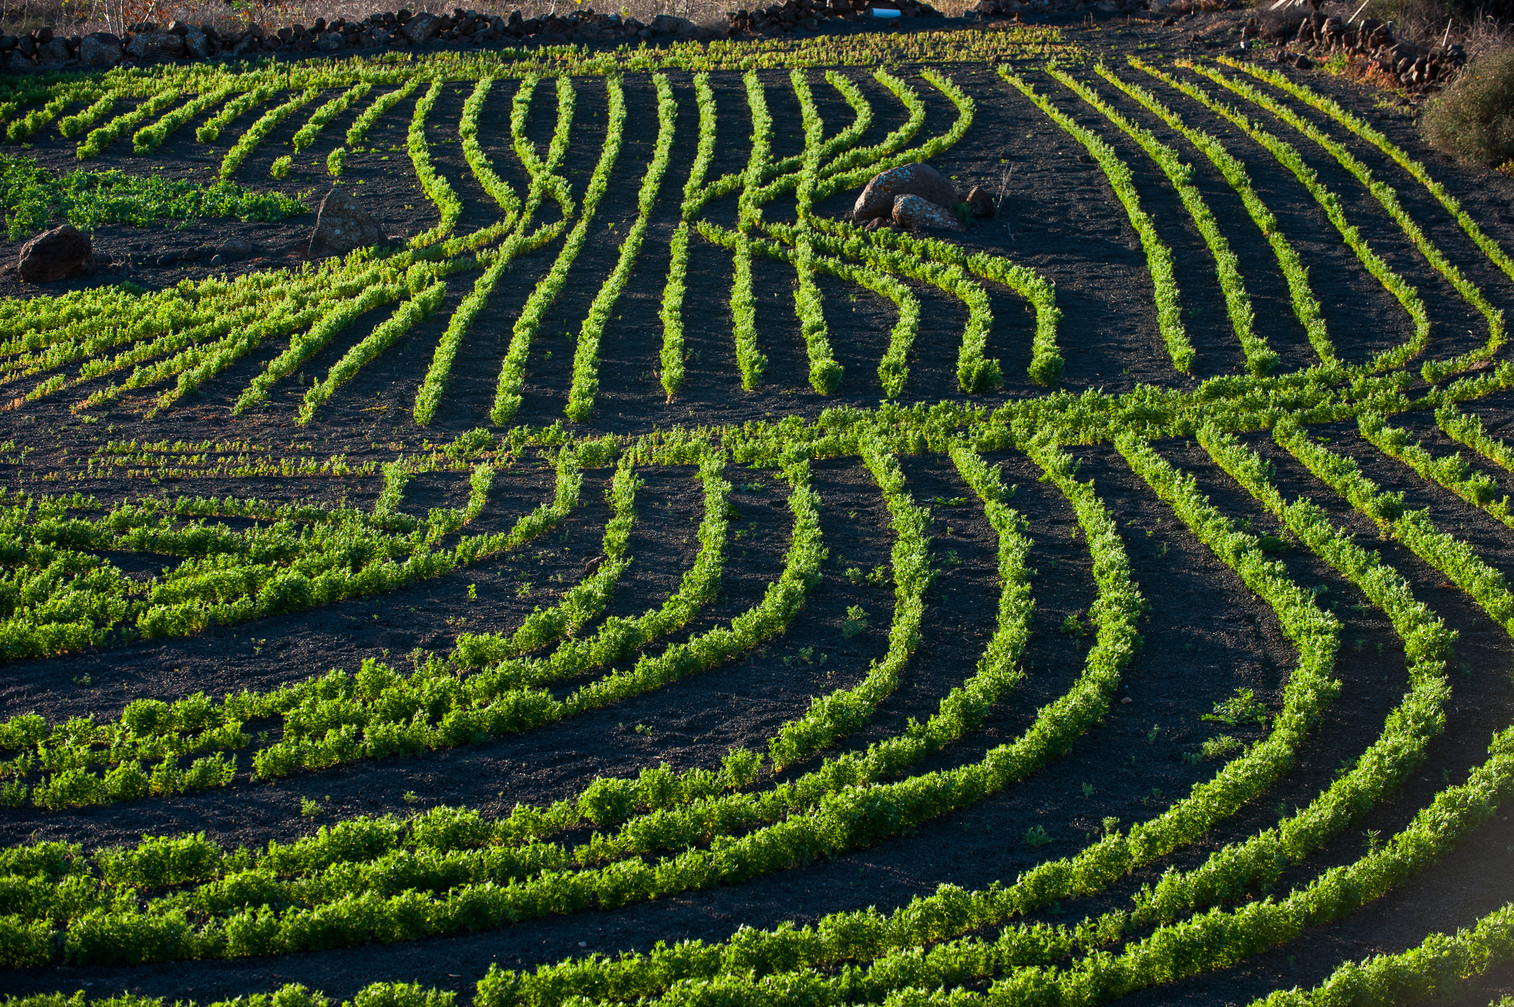 Vineyards near Guatiza - Lanzarote - Canary Islands (Spain)